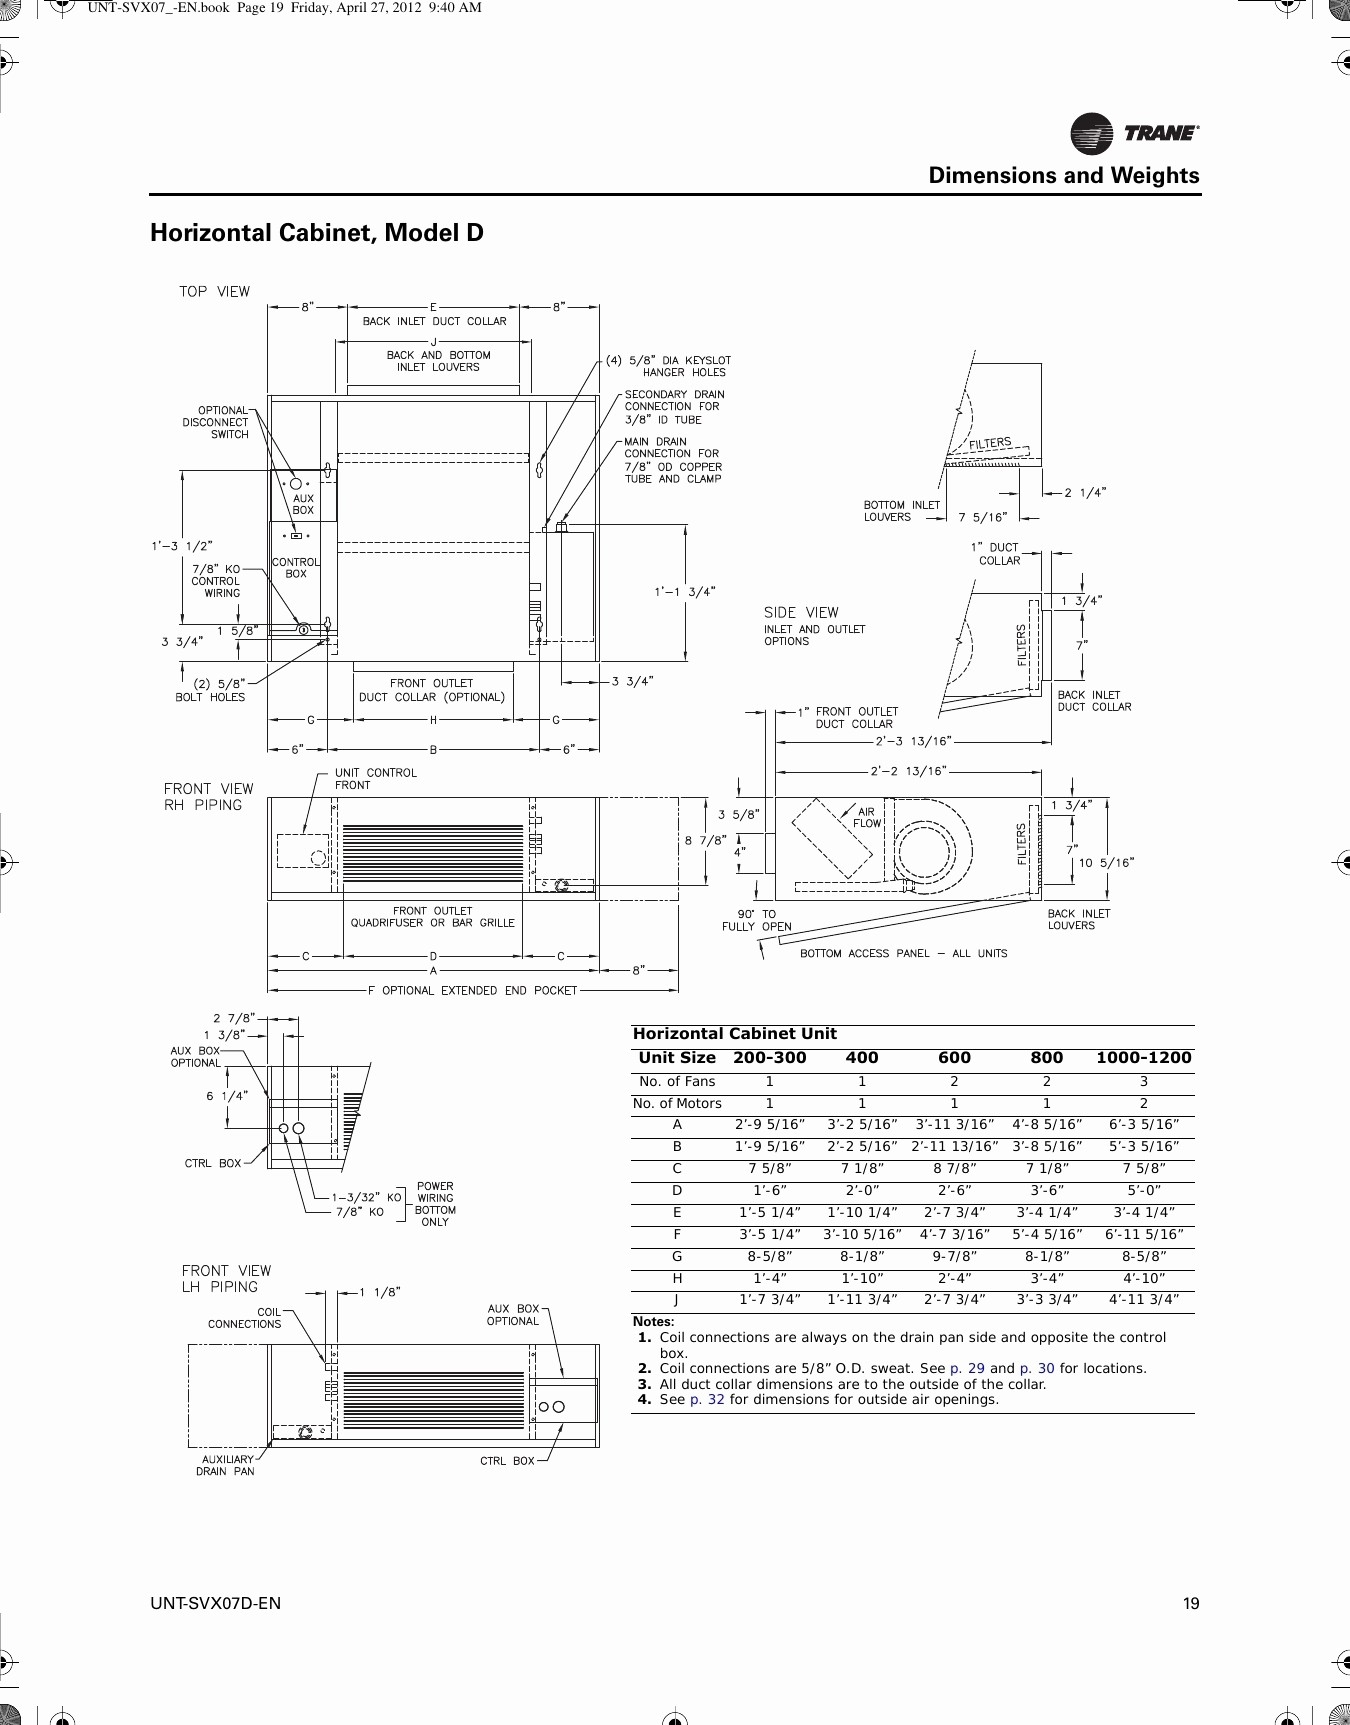 Electric Furnace Wiring Diagram | Free Wiring Diagram on carrier furnace troubleshooting, carrier furnace exhaust, furnace ductwork diagrams, carrier furnace fuses, carrier furnace lighting, carrier heat pump thermostat, carrier furnace parts diagram, carrier furnace home, electric furnace troubleshooting diagrams, carrier furnace service, carrier heat pump wiring diagram, carrier furnace air conditioning, carrier gas furnace, carrier air conditioner diagrams, carrier heat pump parts diagram, carrier thermostat wiring, carrier hvac parts diagram, carrier package unit wiring diagram, carrier heat pump replacement parts, coleman furnace parts diagrams,